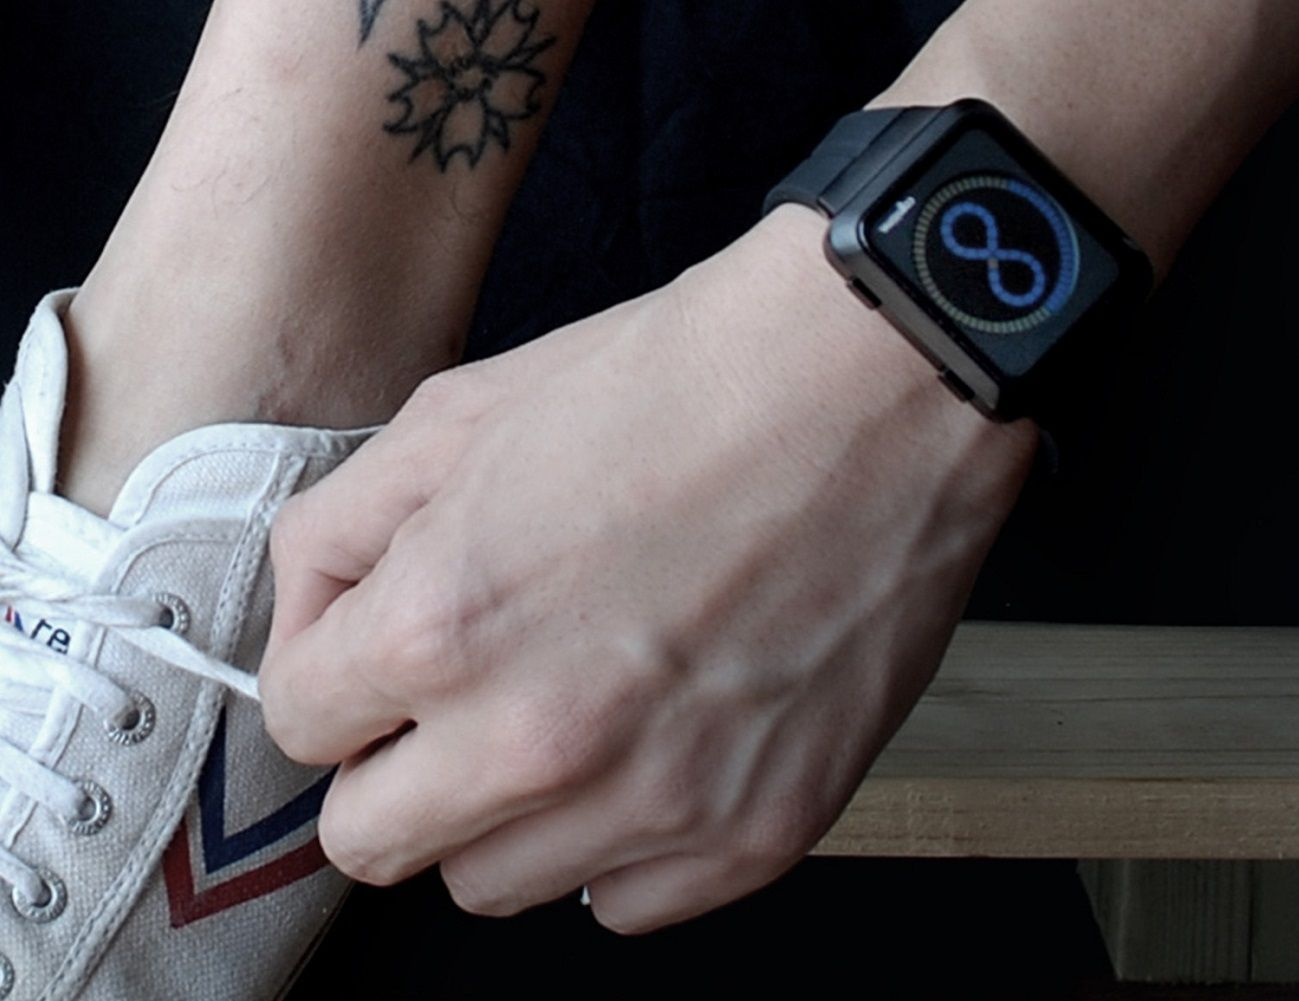 Cognitime Watch – $80